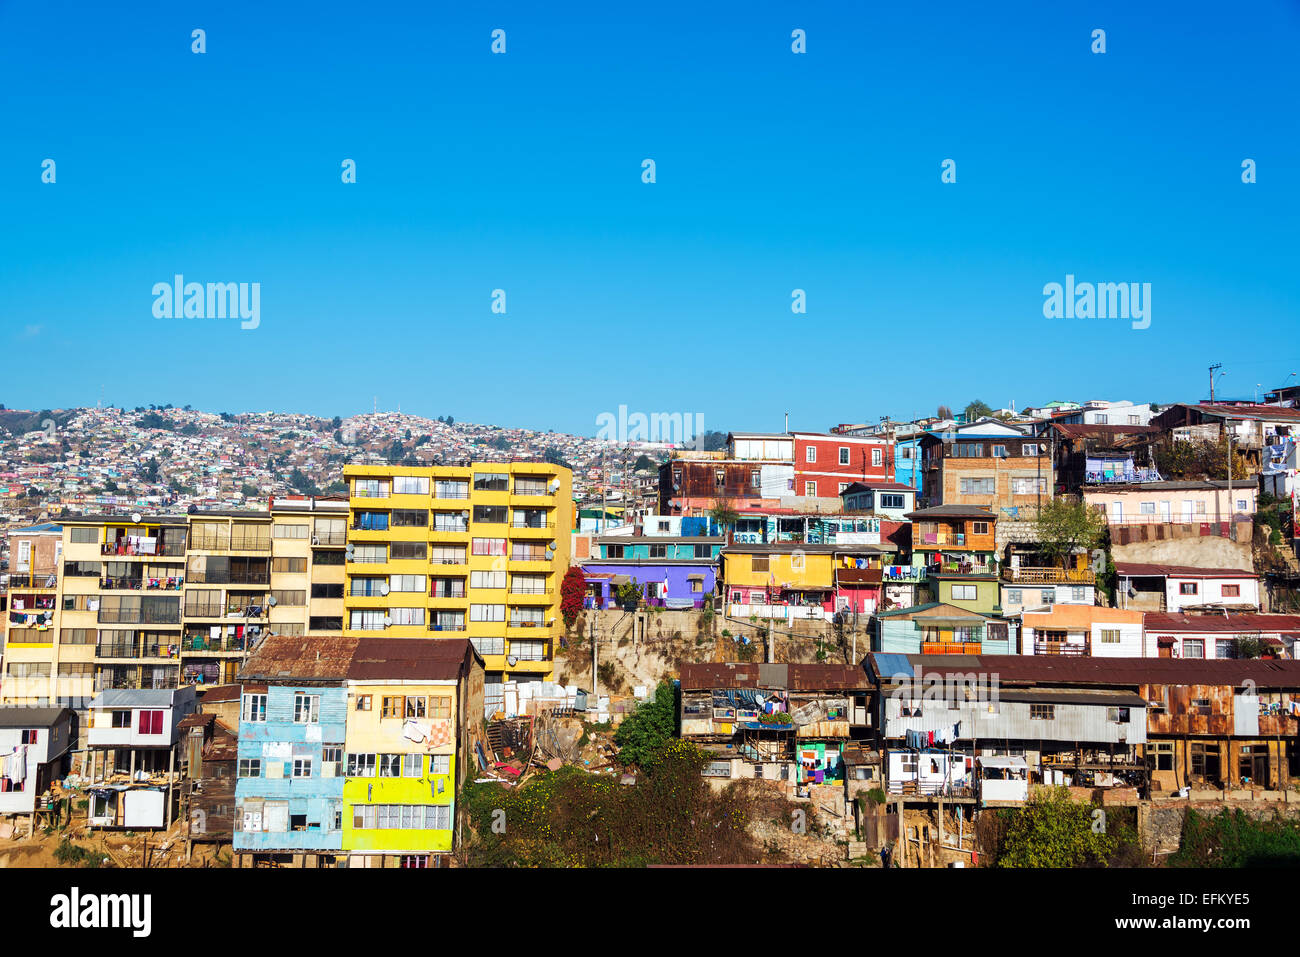 Cityscape of one of the hills in Valparaiso, Chile - Stock Image